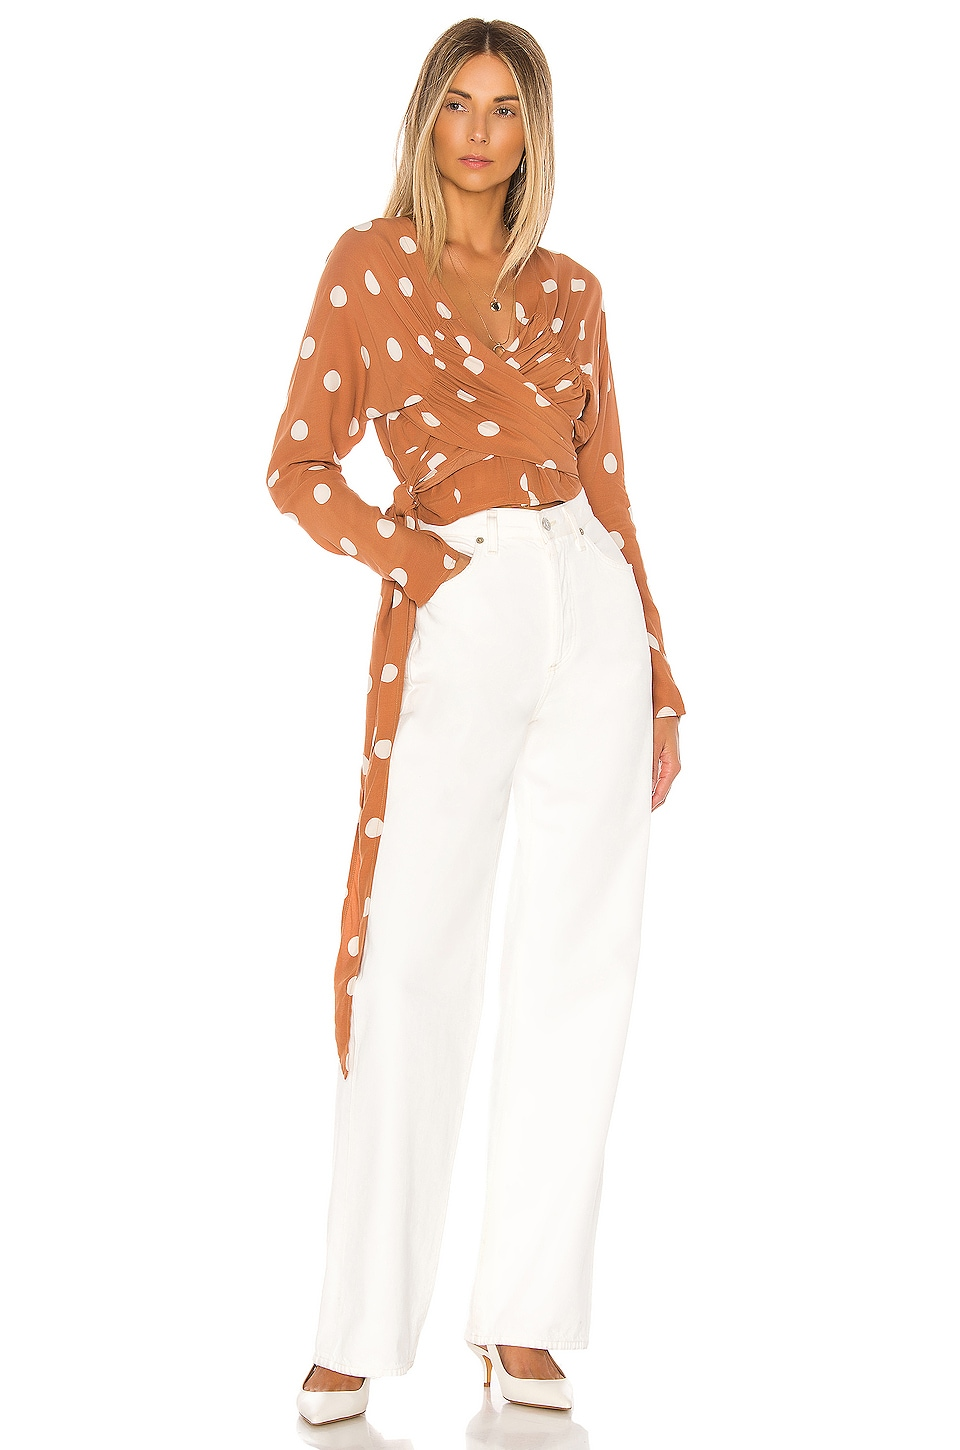 L'Academie The Lydie Top in Rust & Ivory Dot